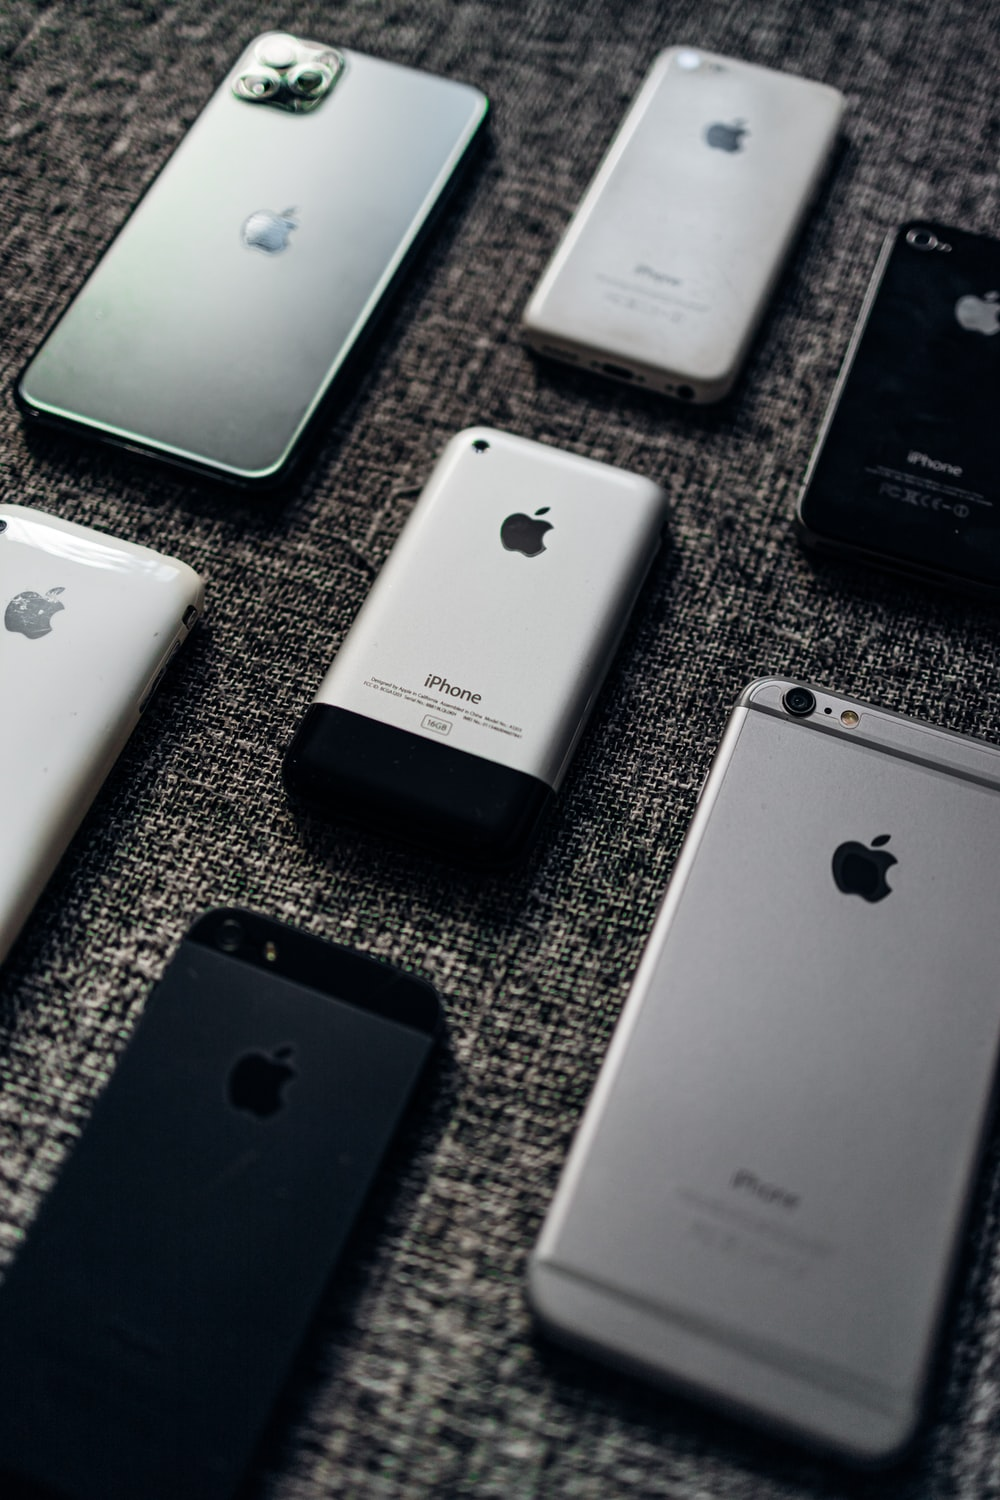 silver iphone 6 and space gray iphone 6